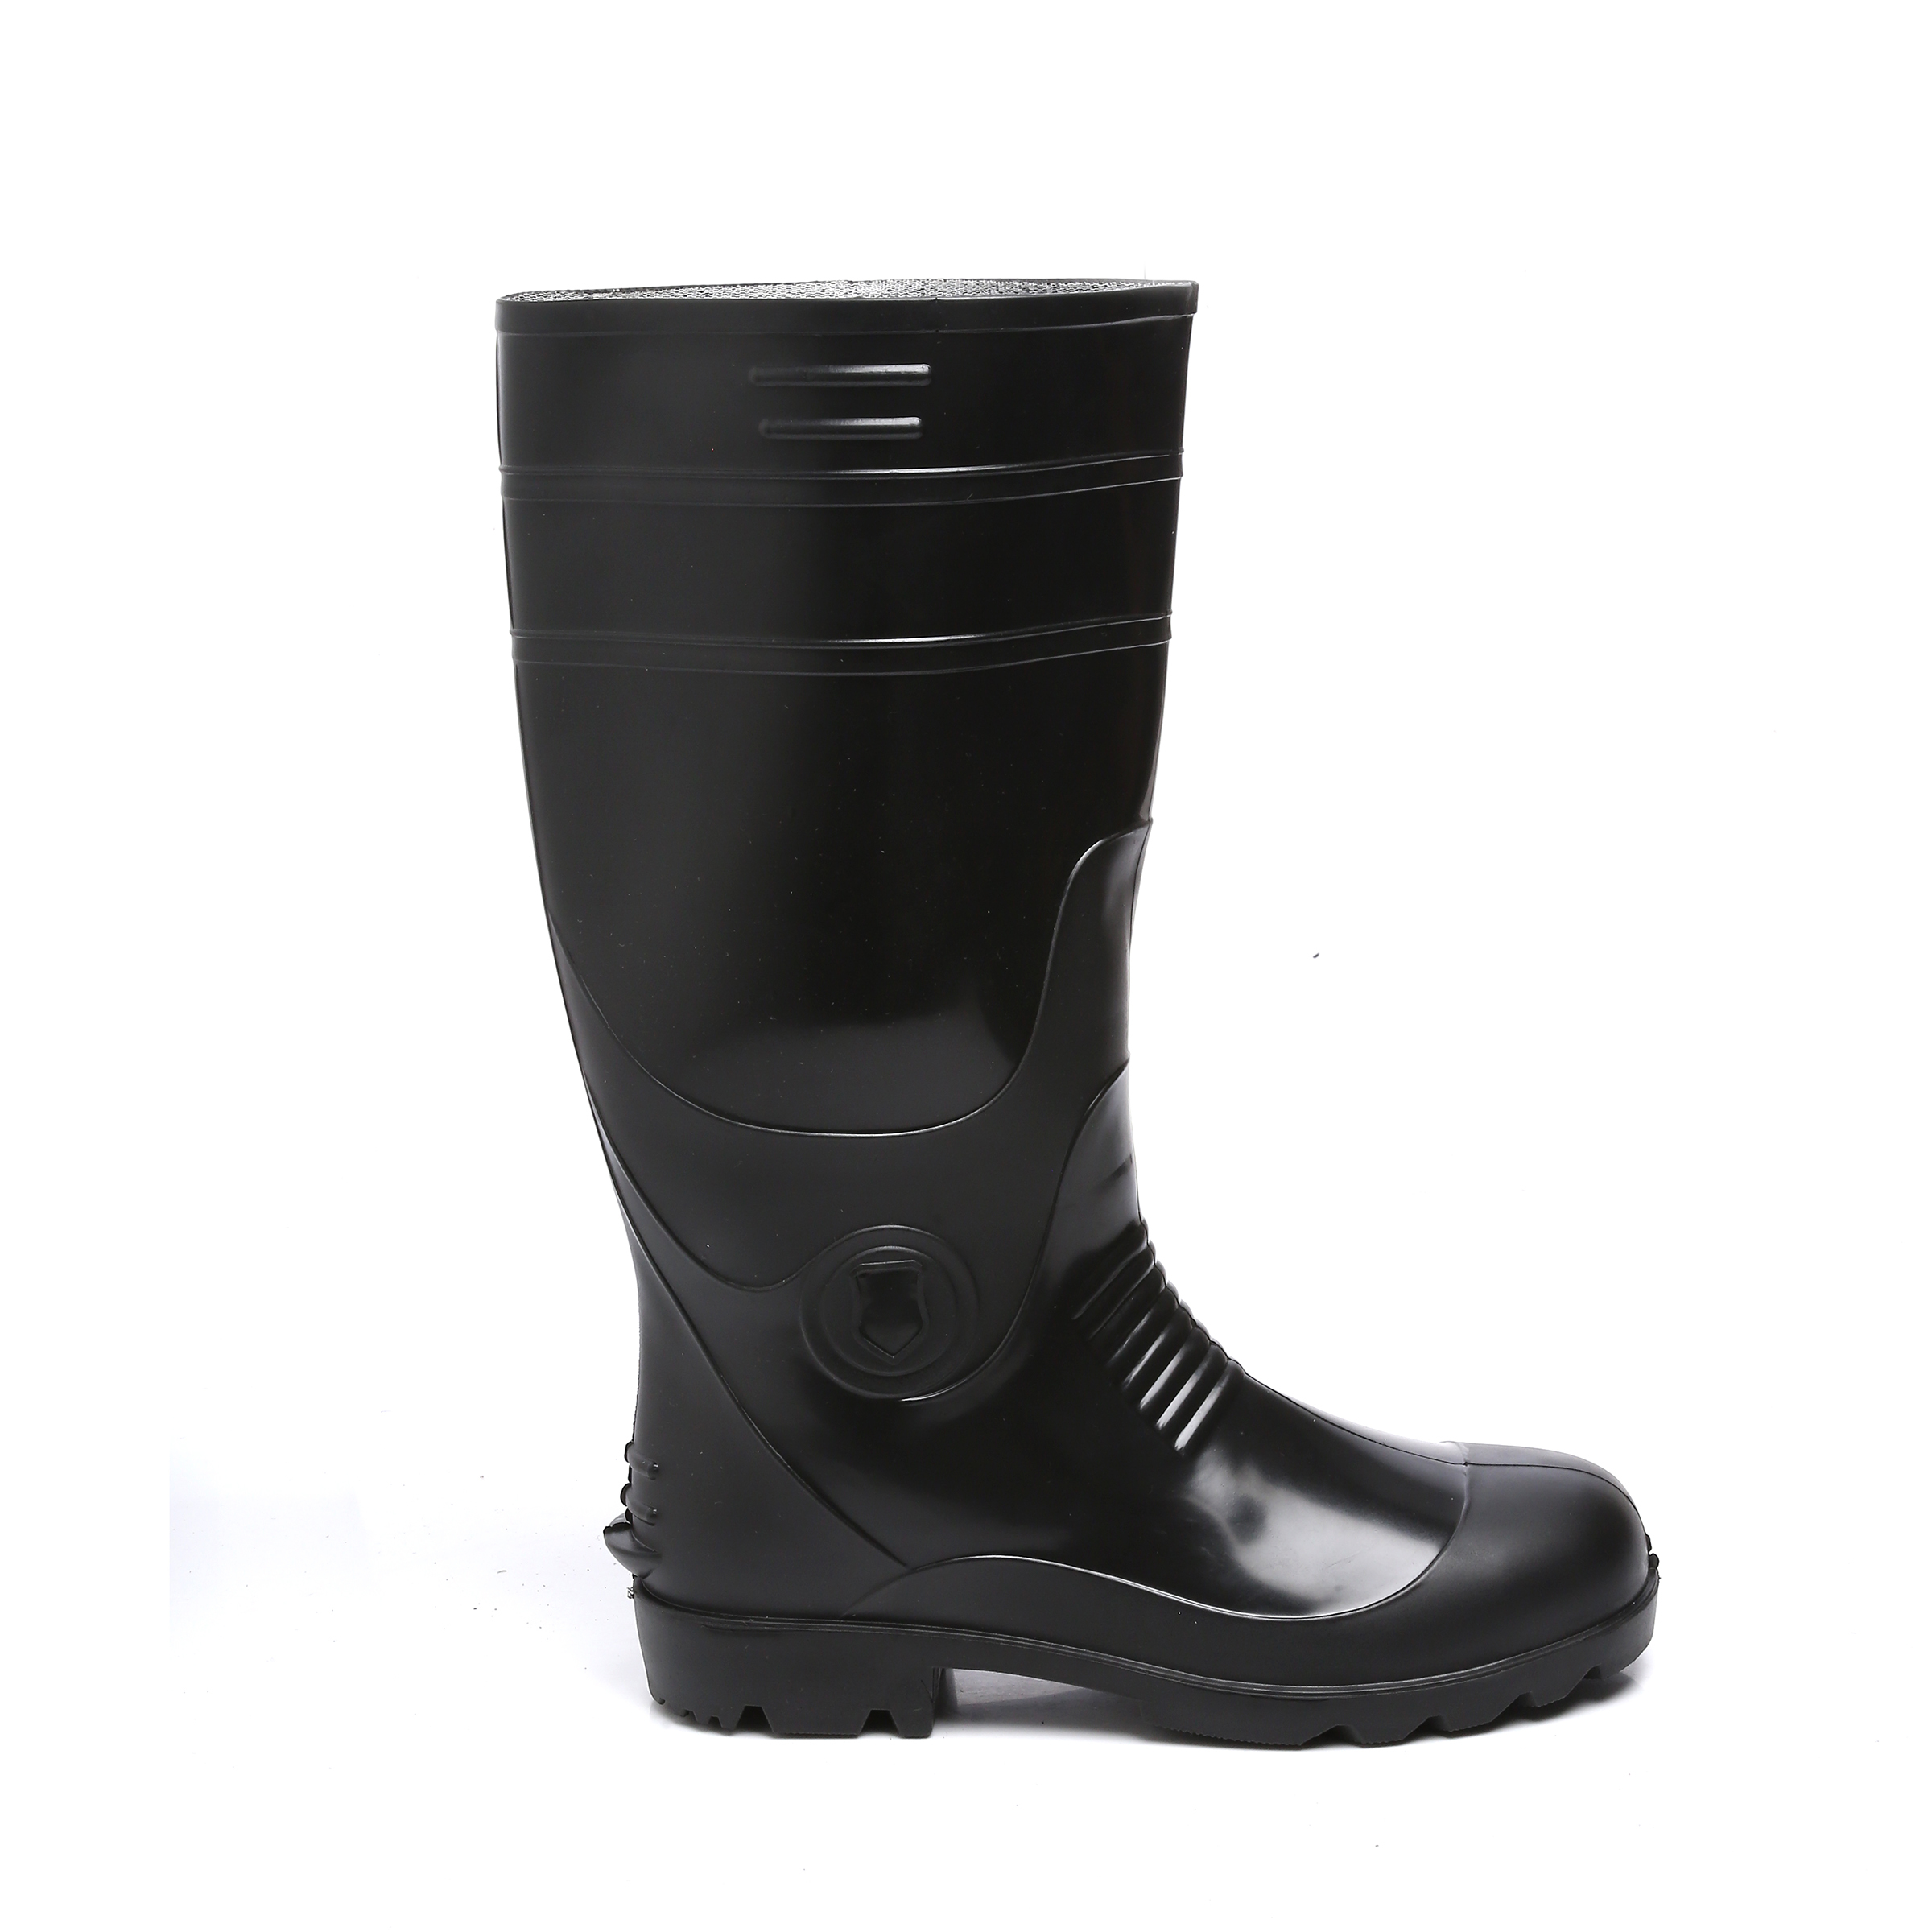 Steel Toe Safety Gumboots